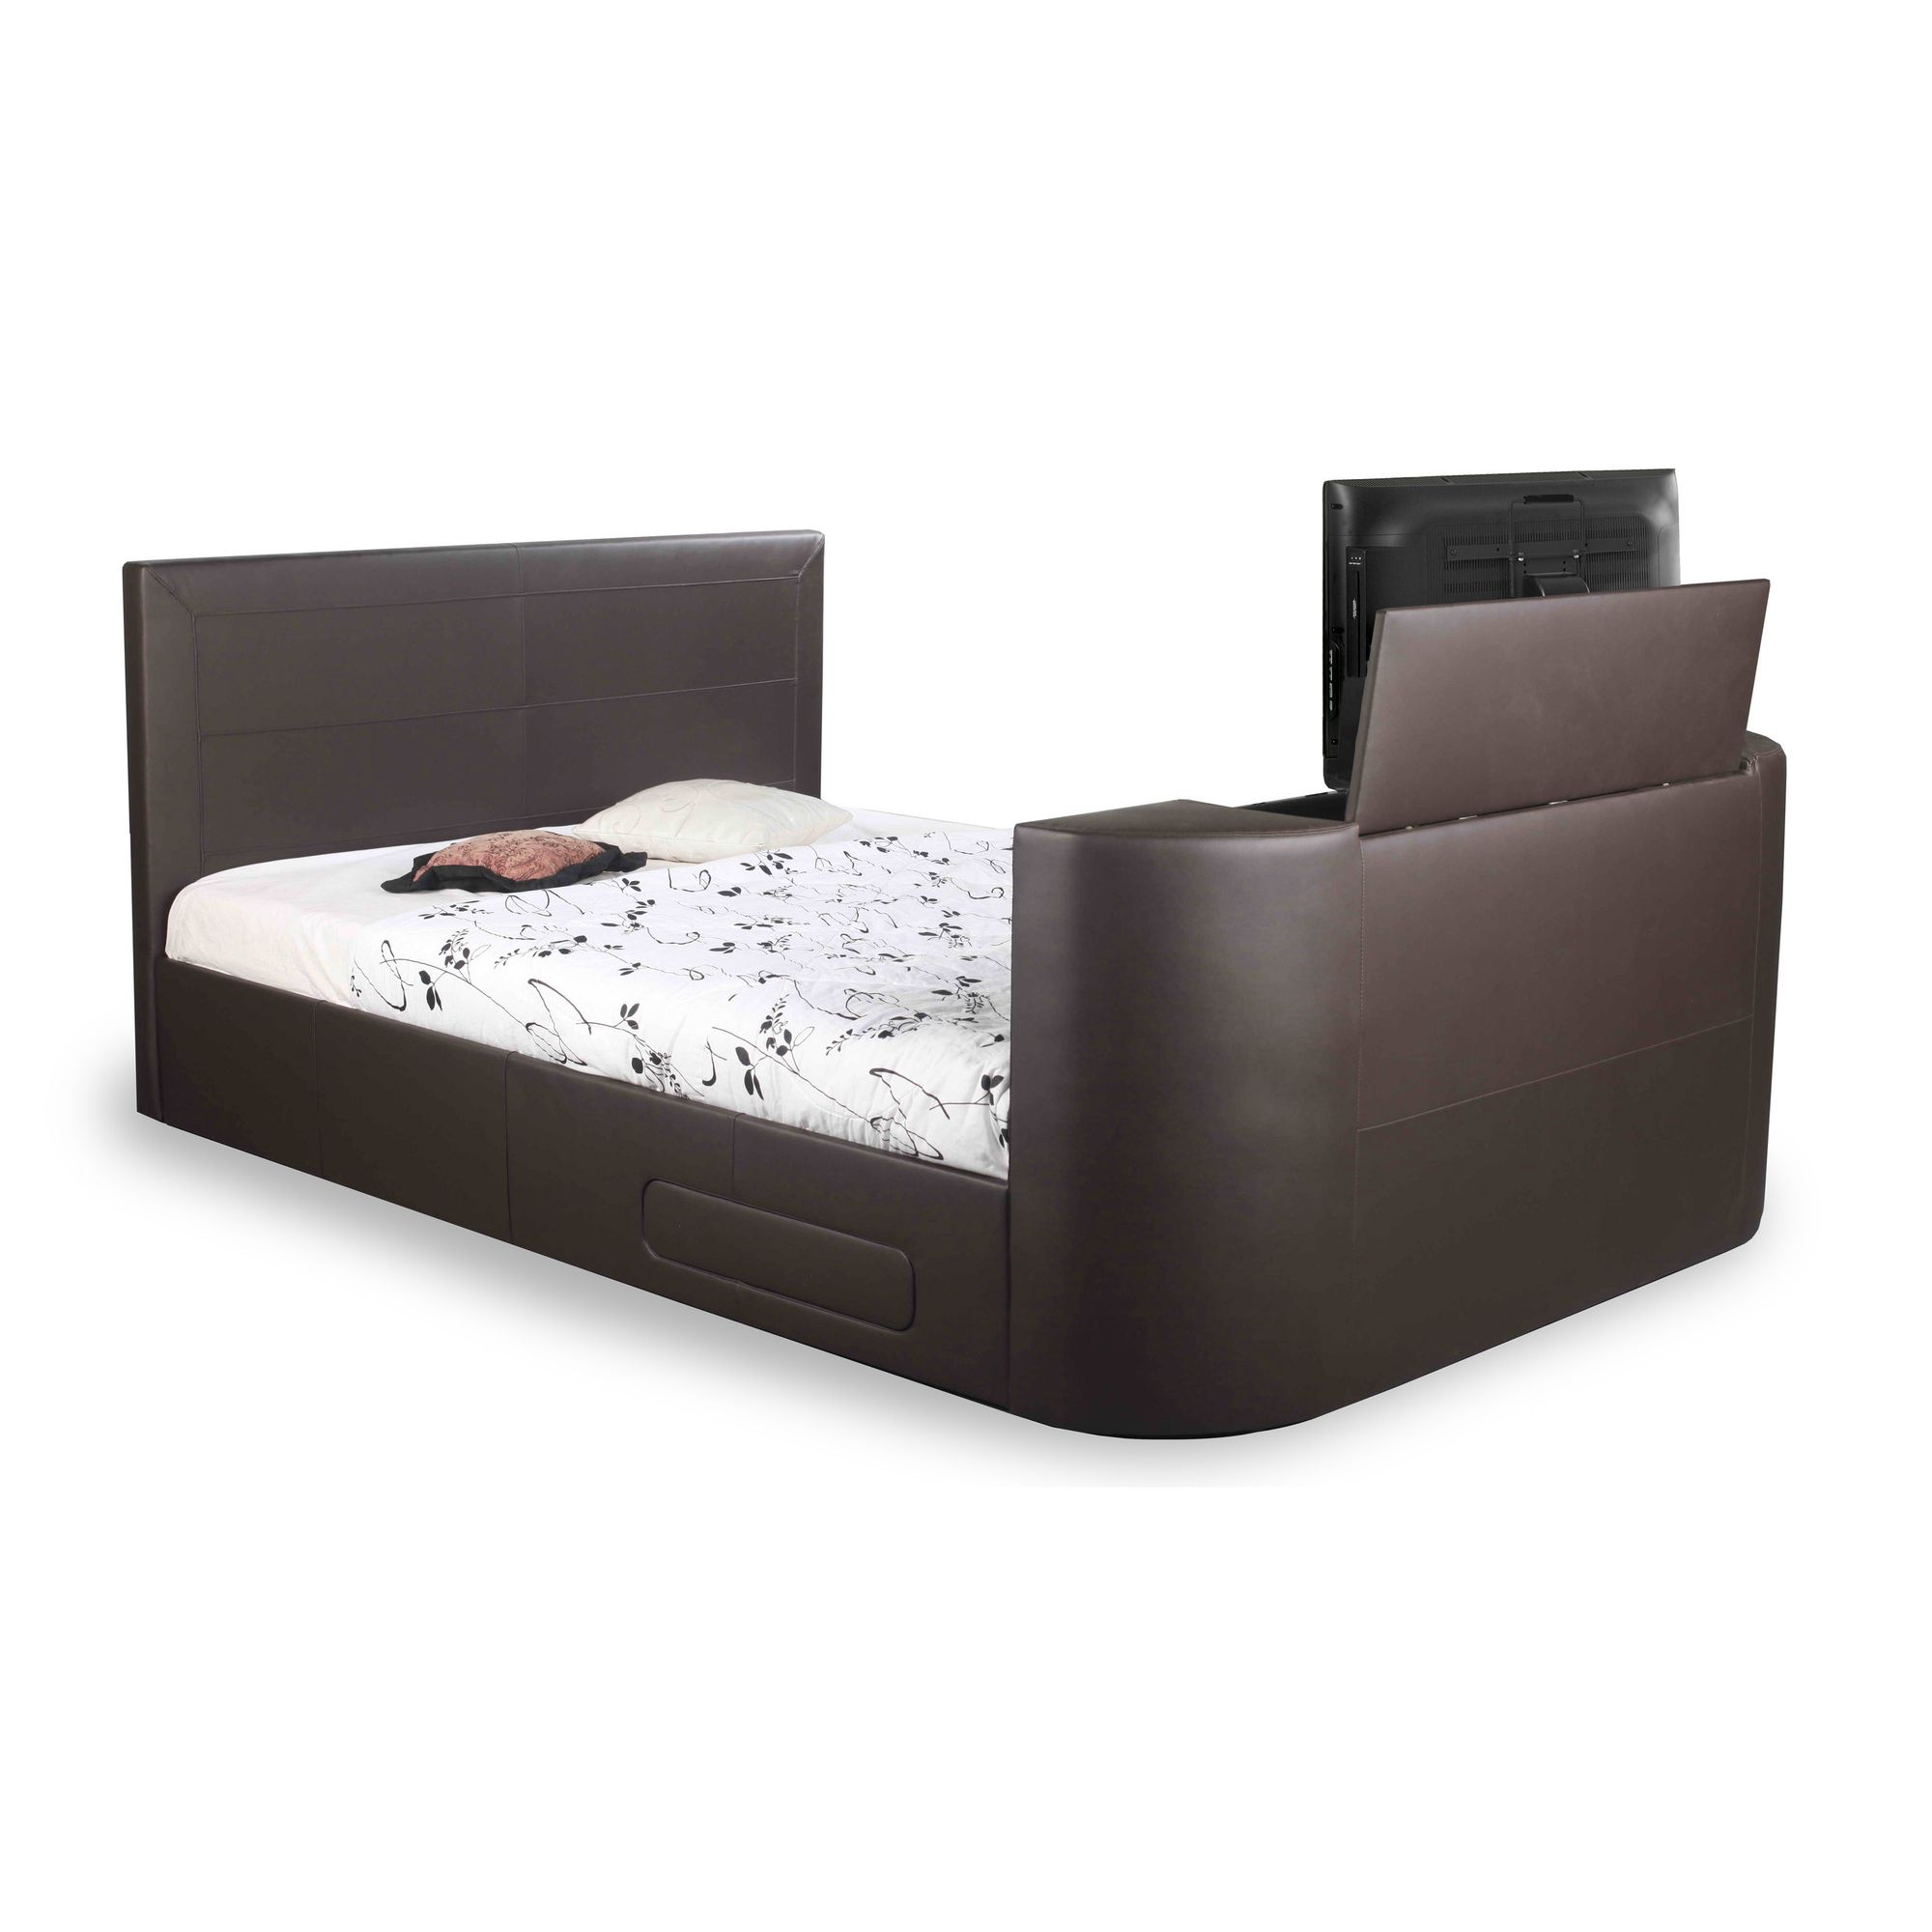 Altruna Sophia TV Bed - Double at Tesco Direct